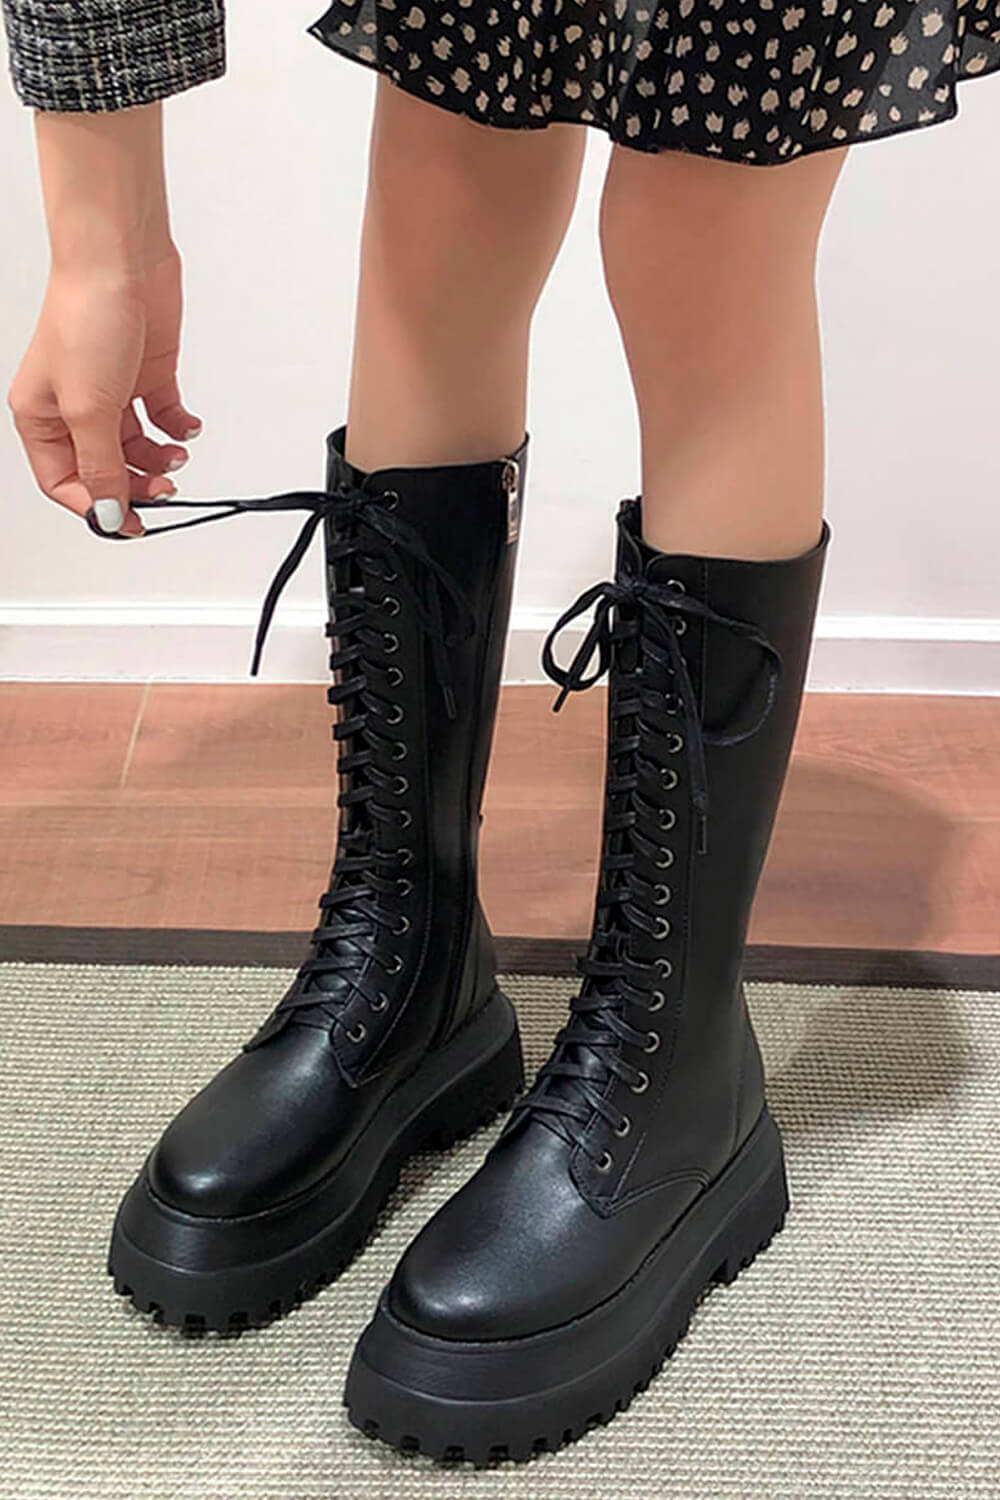 Black Alt Girl High Combat Boots Thick Sole